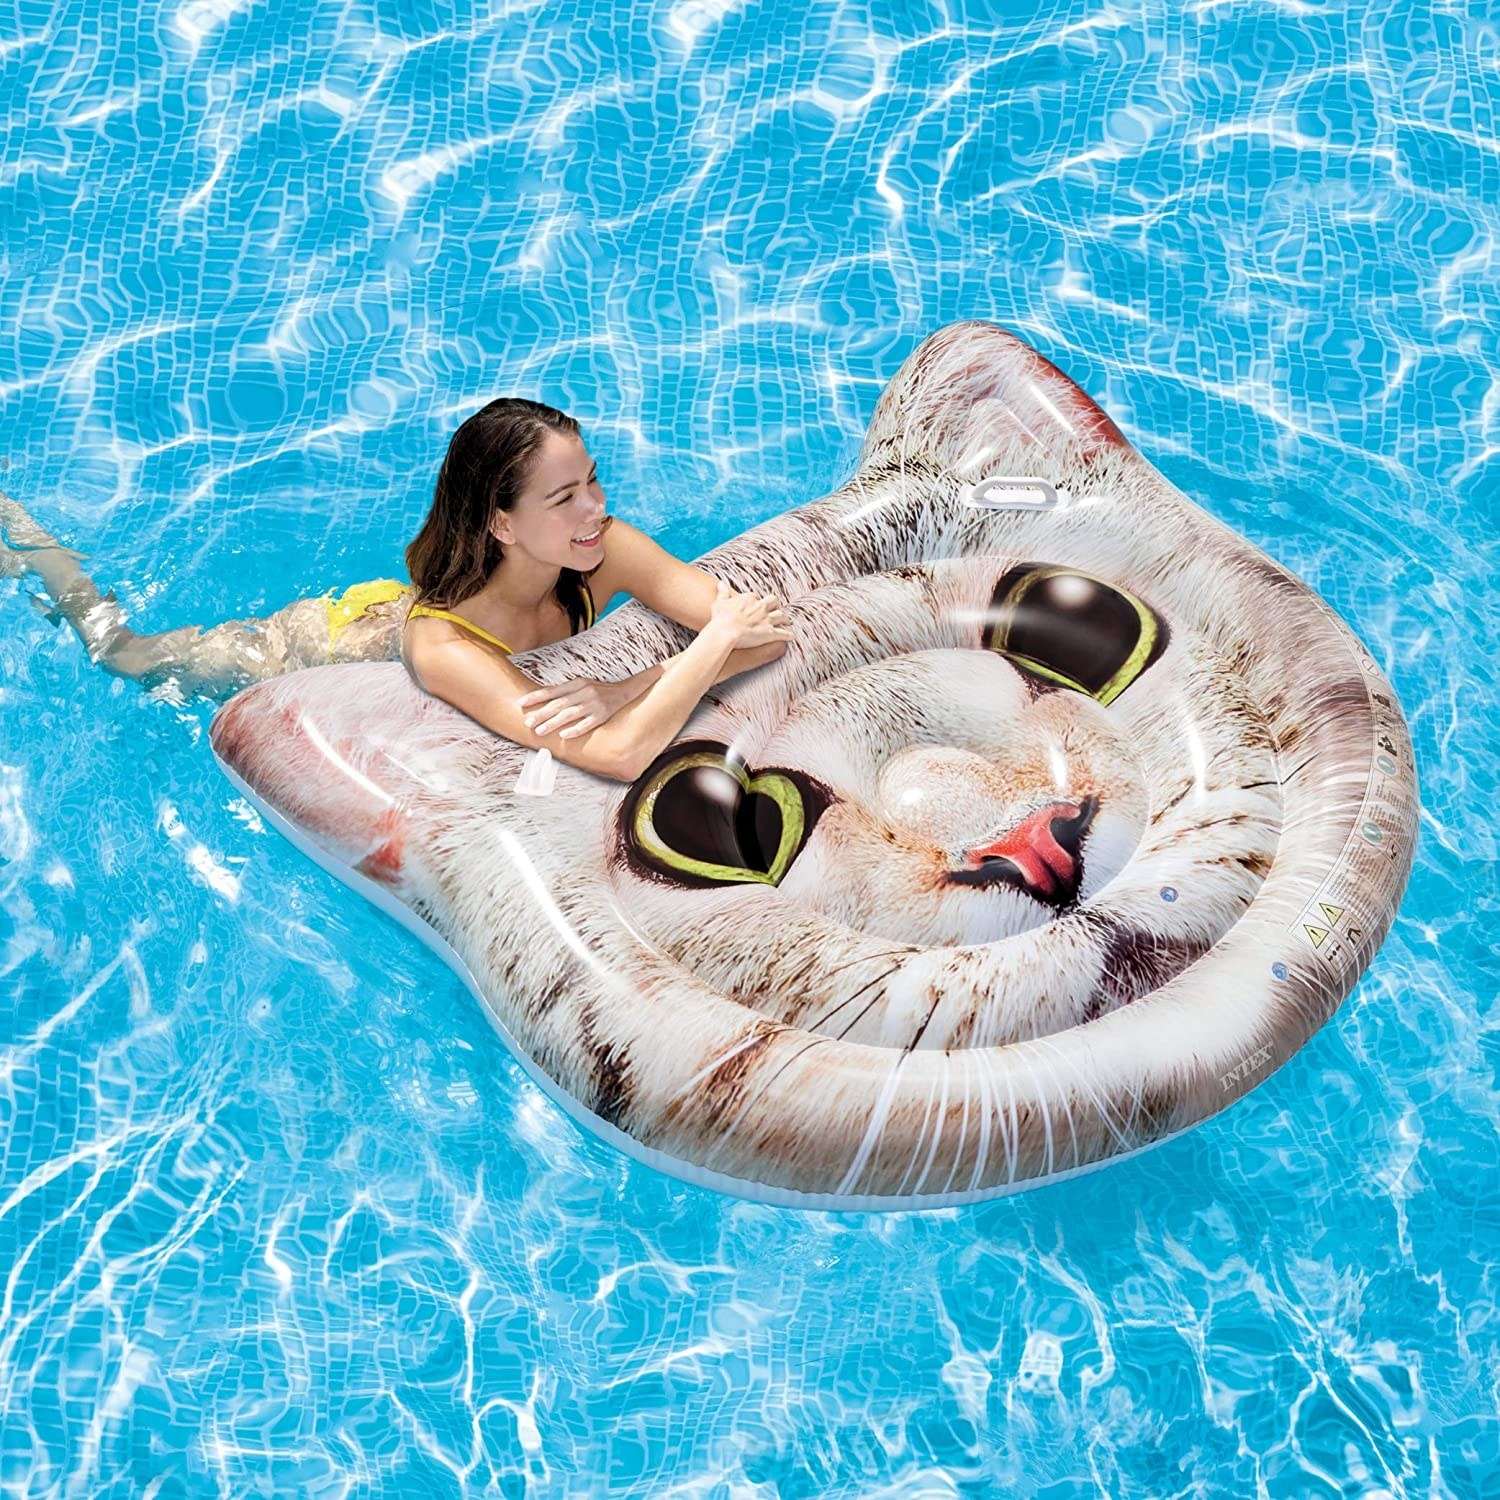 A model in a pool with the float, which is shaped like a cat's head an features a photo of a green-eyed tabby's face